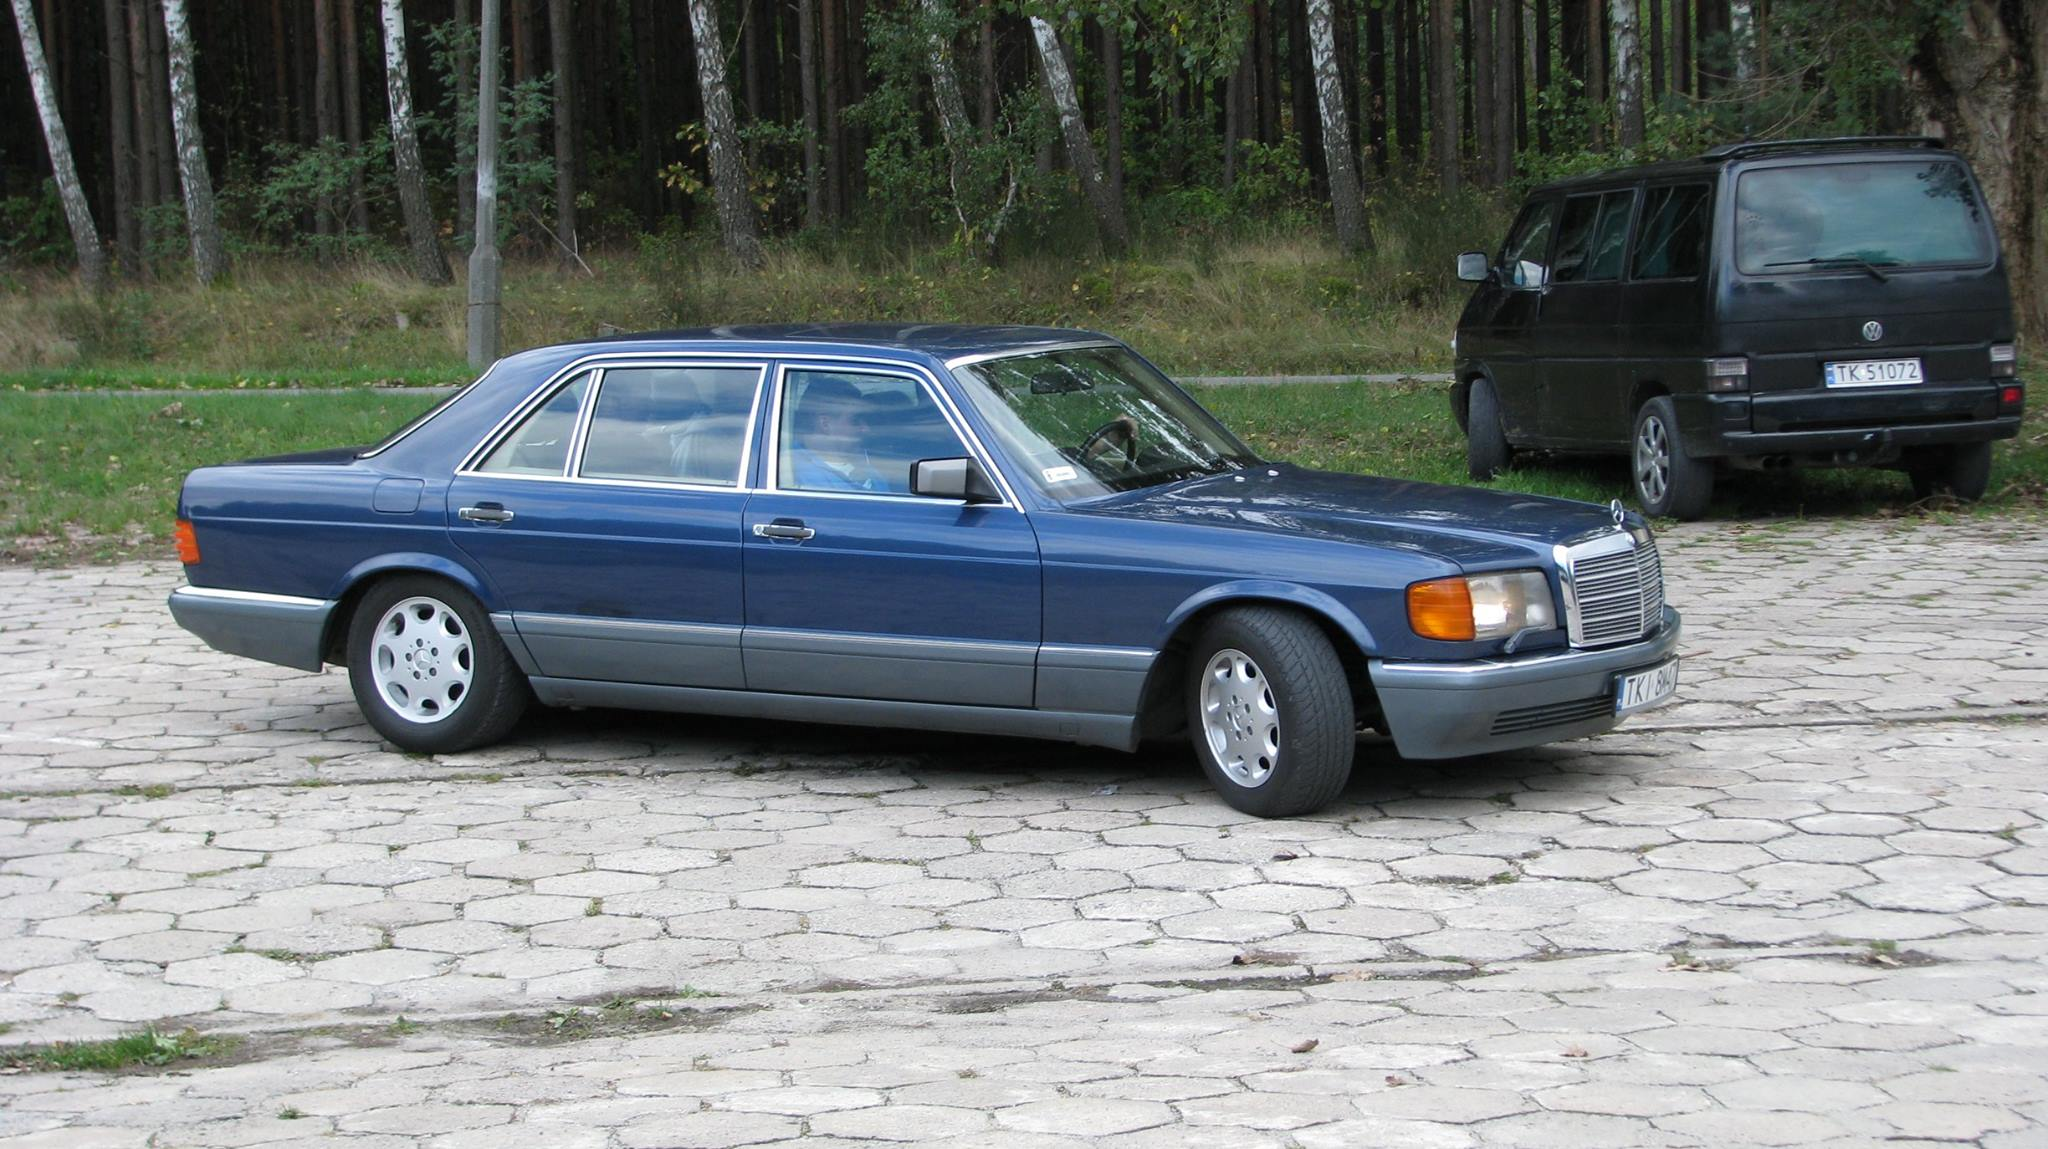 http://124coupe.pl/hosting/images/7ctc.jpg